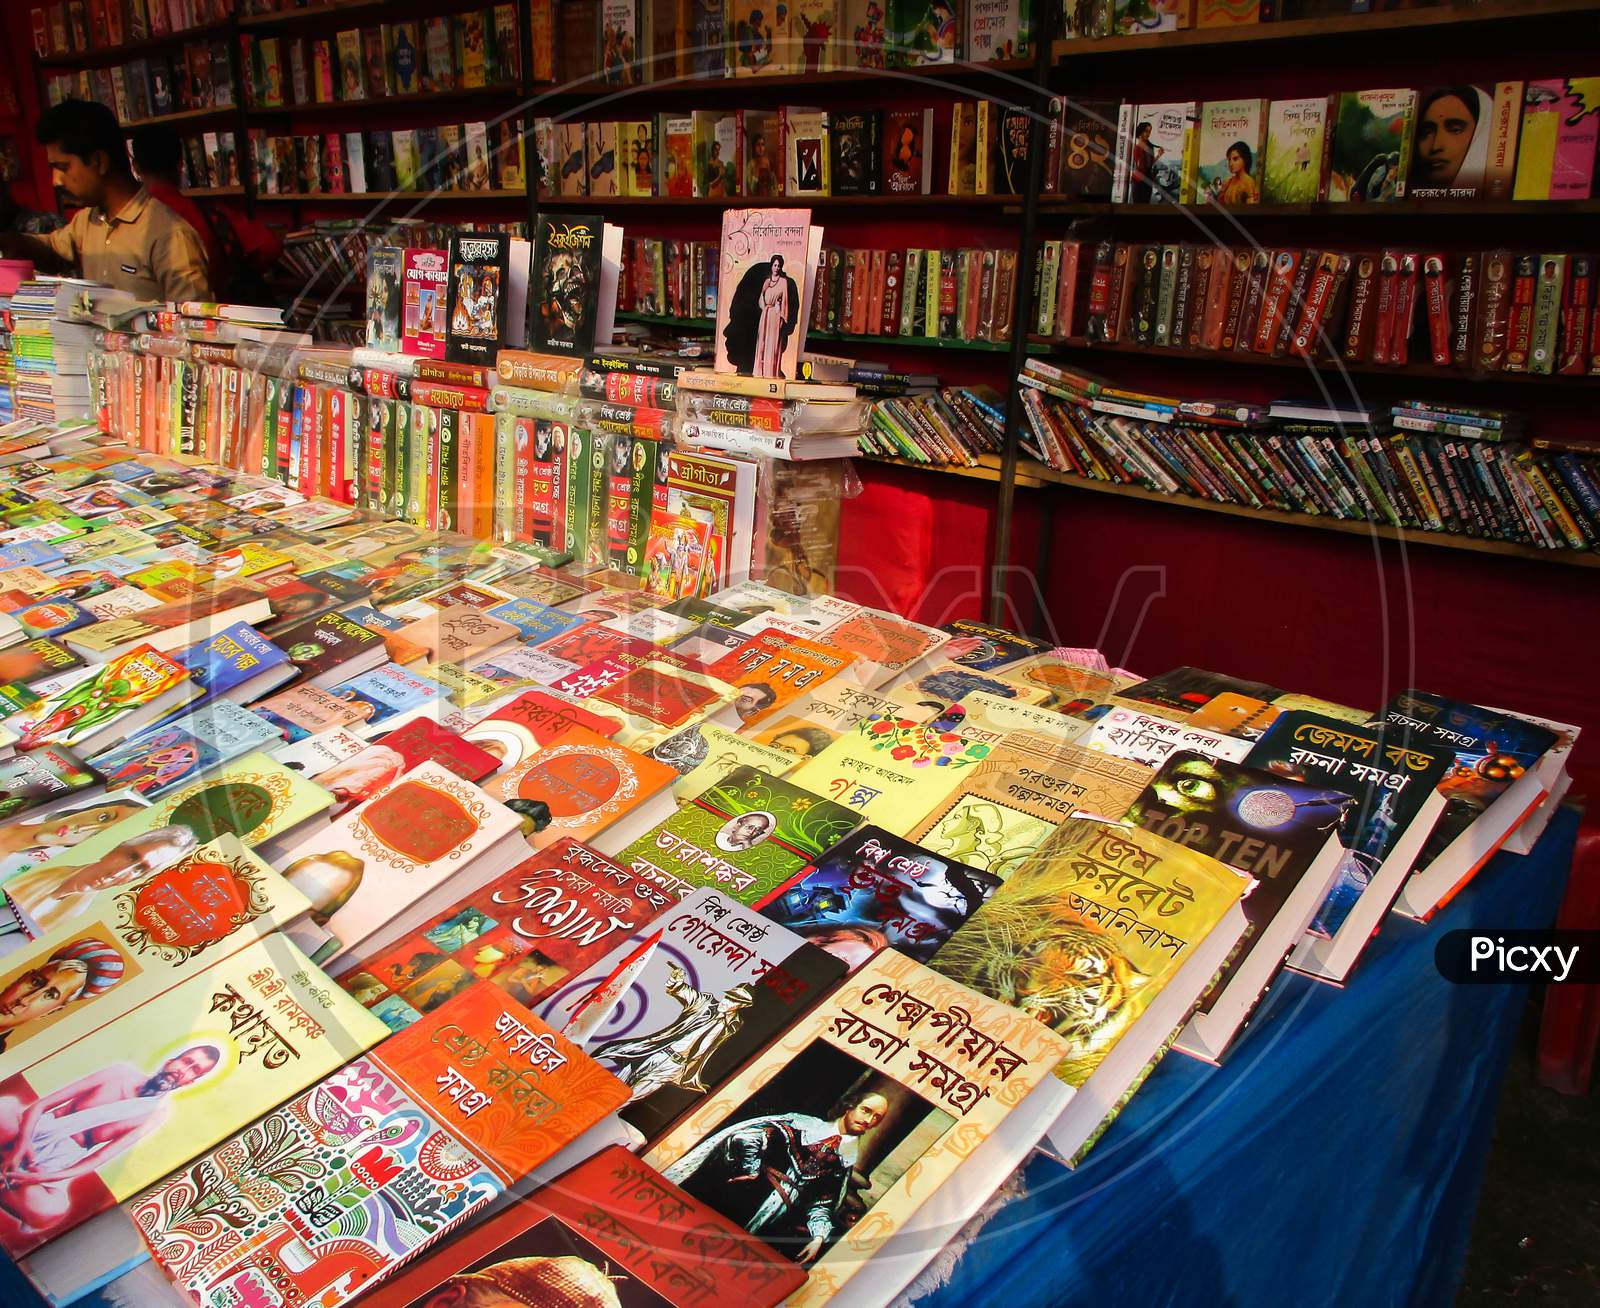 West Bengal , India March 02, 2020 : Indian Book Fair, There Are Many Bengali Books In The Fair Shop And The Store Keeper Placed Those Books With An Interesting View .